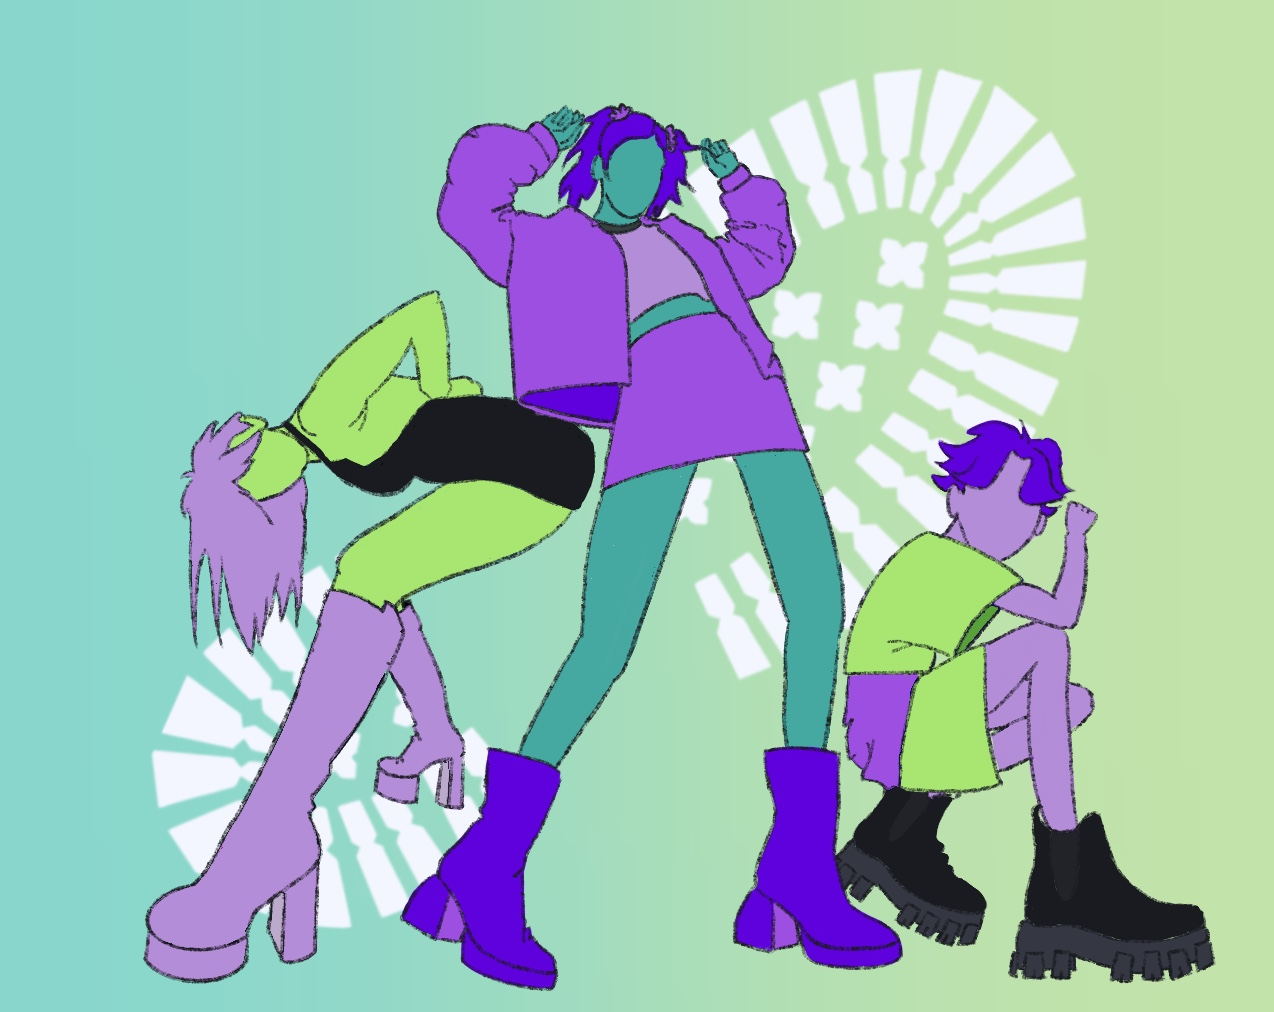 Colourful illustration of three figures modelling different boot styles.